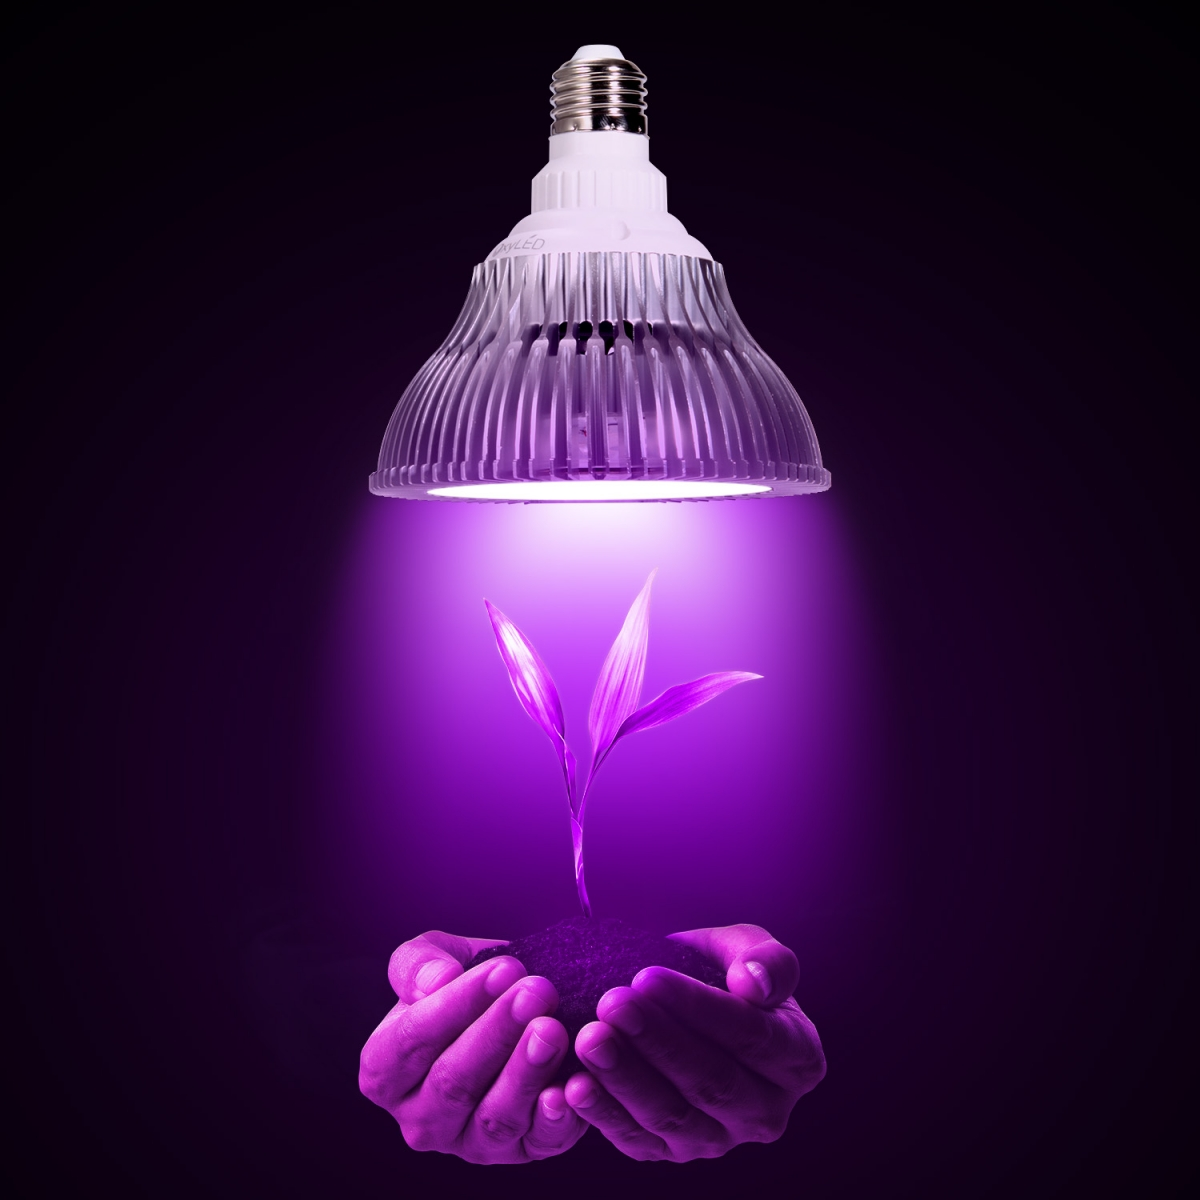 OxyLED Led Grow Light Kits 12W Indoor Growing Lamp Fixture Hydroponic Bulb Fruit Trees Seeds Indoor Greenhouse Plant Veg Flowering